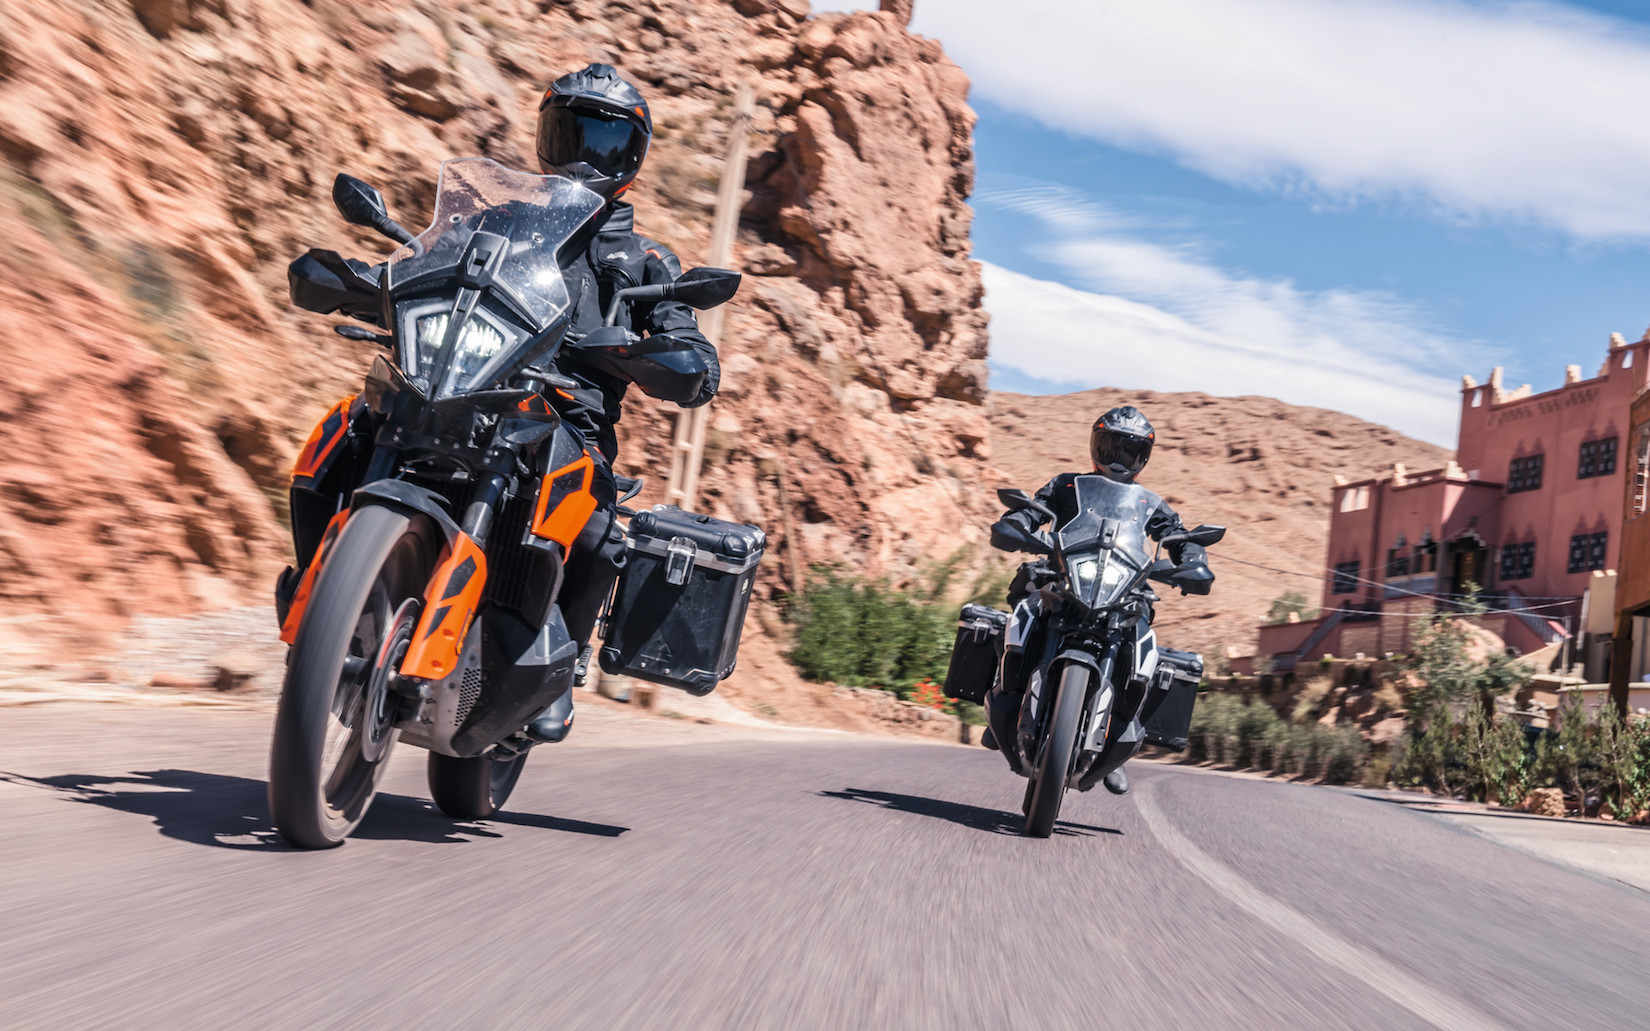 KTM 790 Adventure on the road